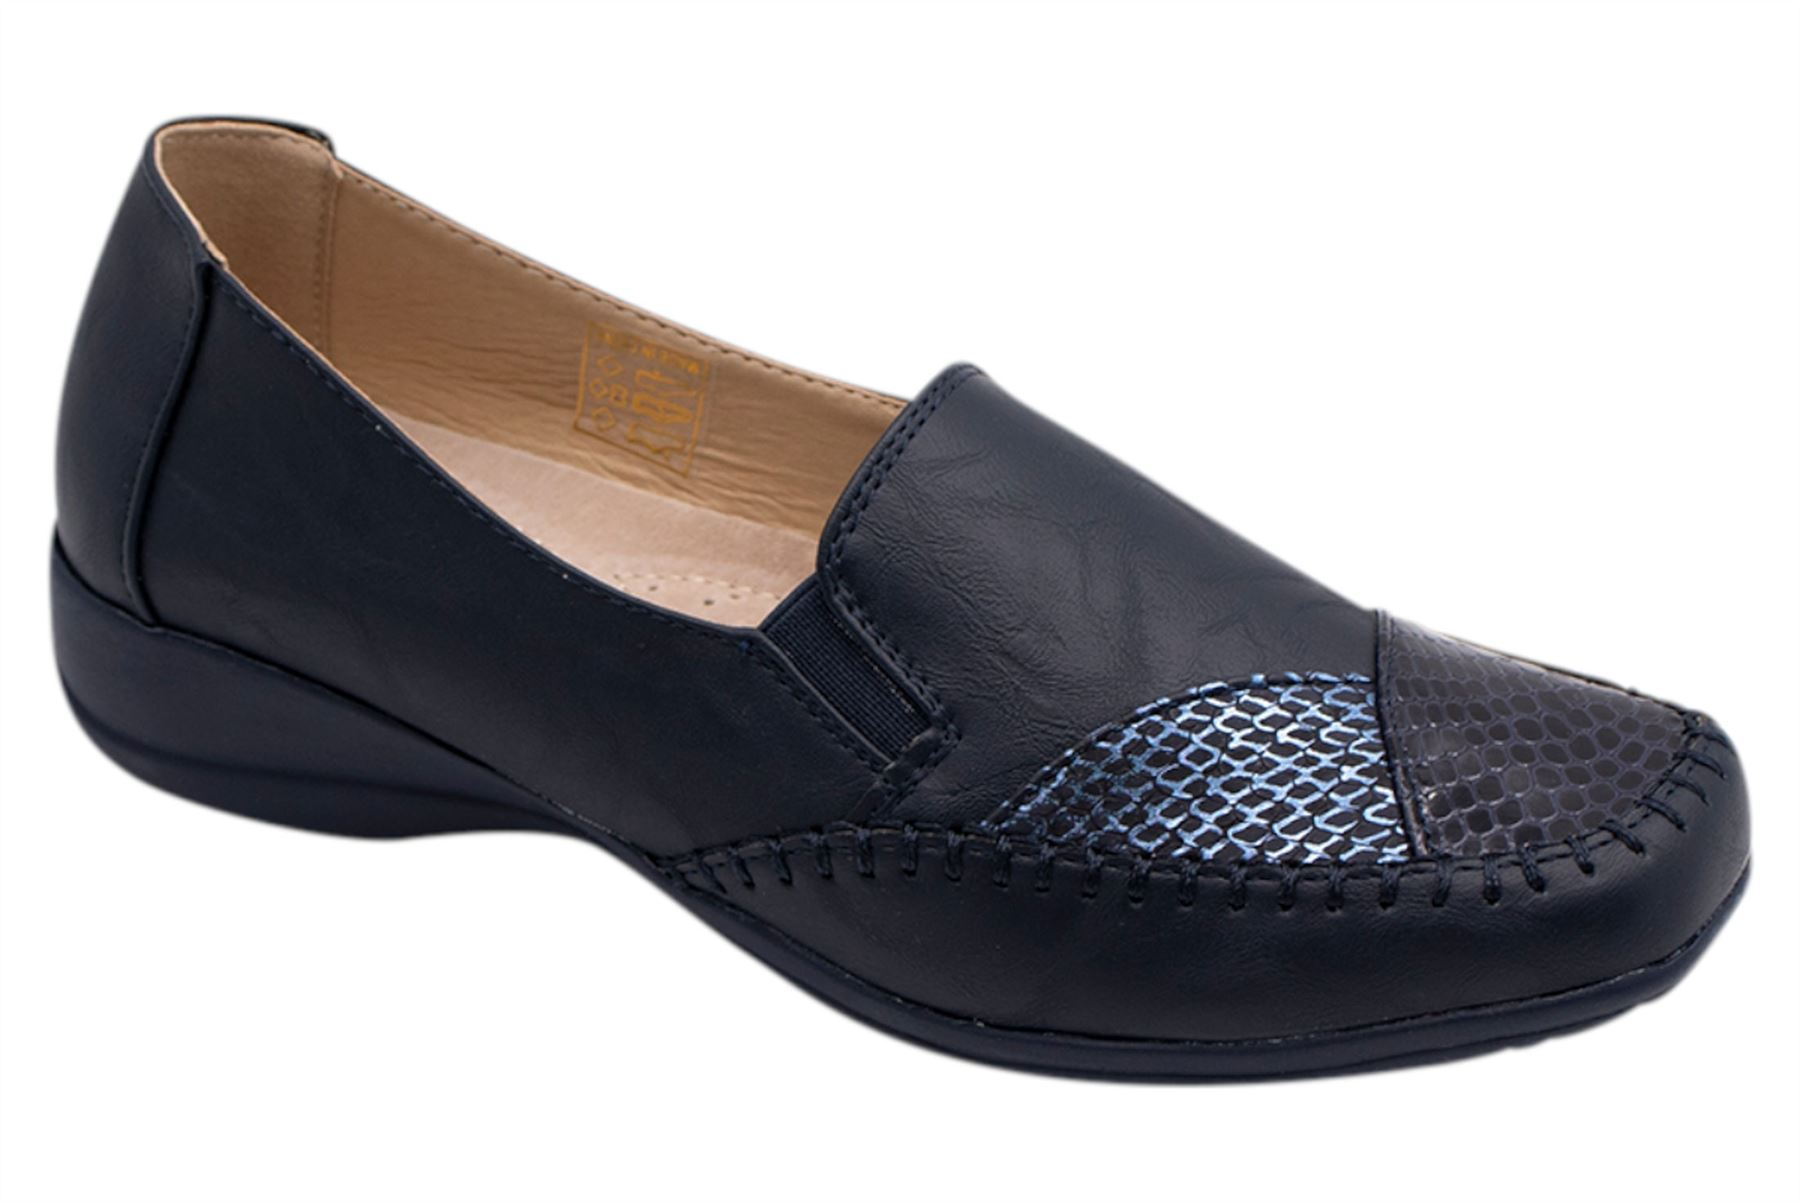 Womens-Flat-Shoes-Ladies-Pumps-Office-Work-Casual-Slip-On-Loafer-Size thumbnail 19